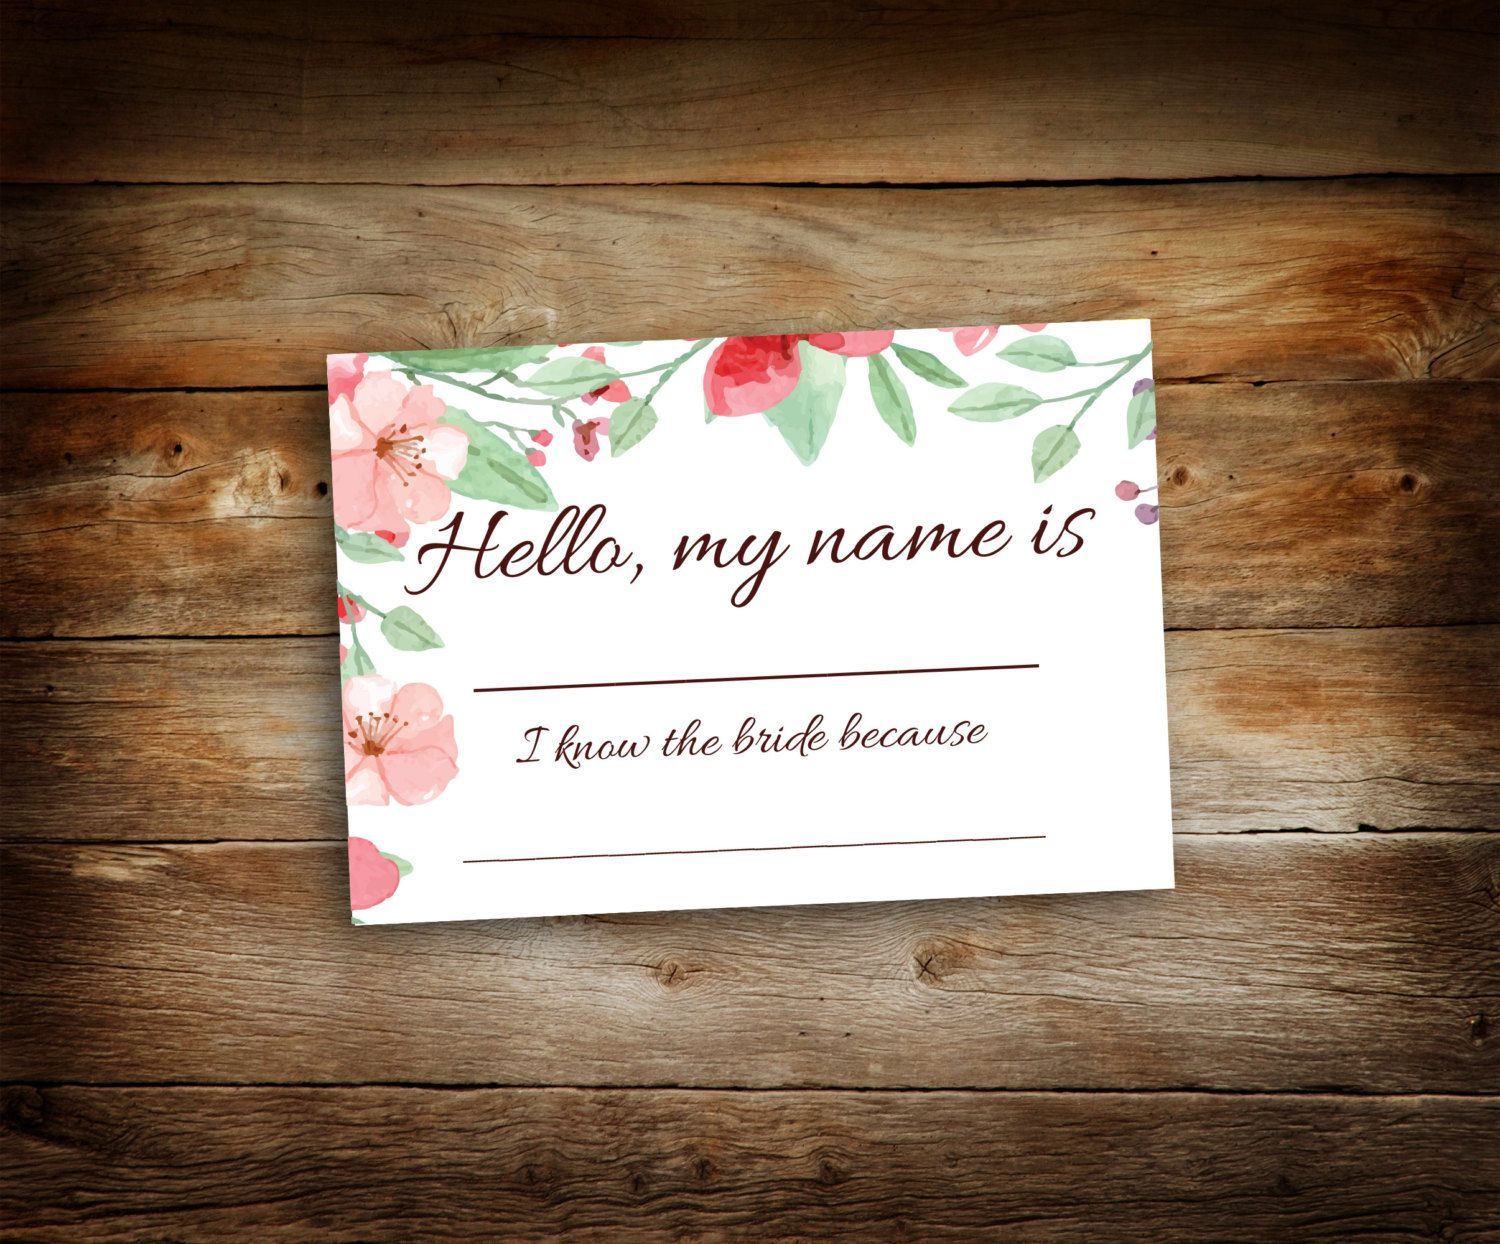 Bridal Shower Name Tags Guest Name Tags I Know The Bride Because Flower Name Tags Fits Avery White Adhesive Na Bridal Shower Shop Name Ideas Name Tags